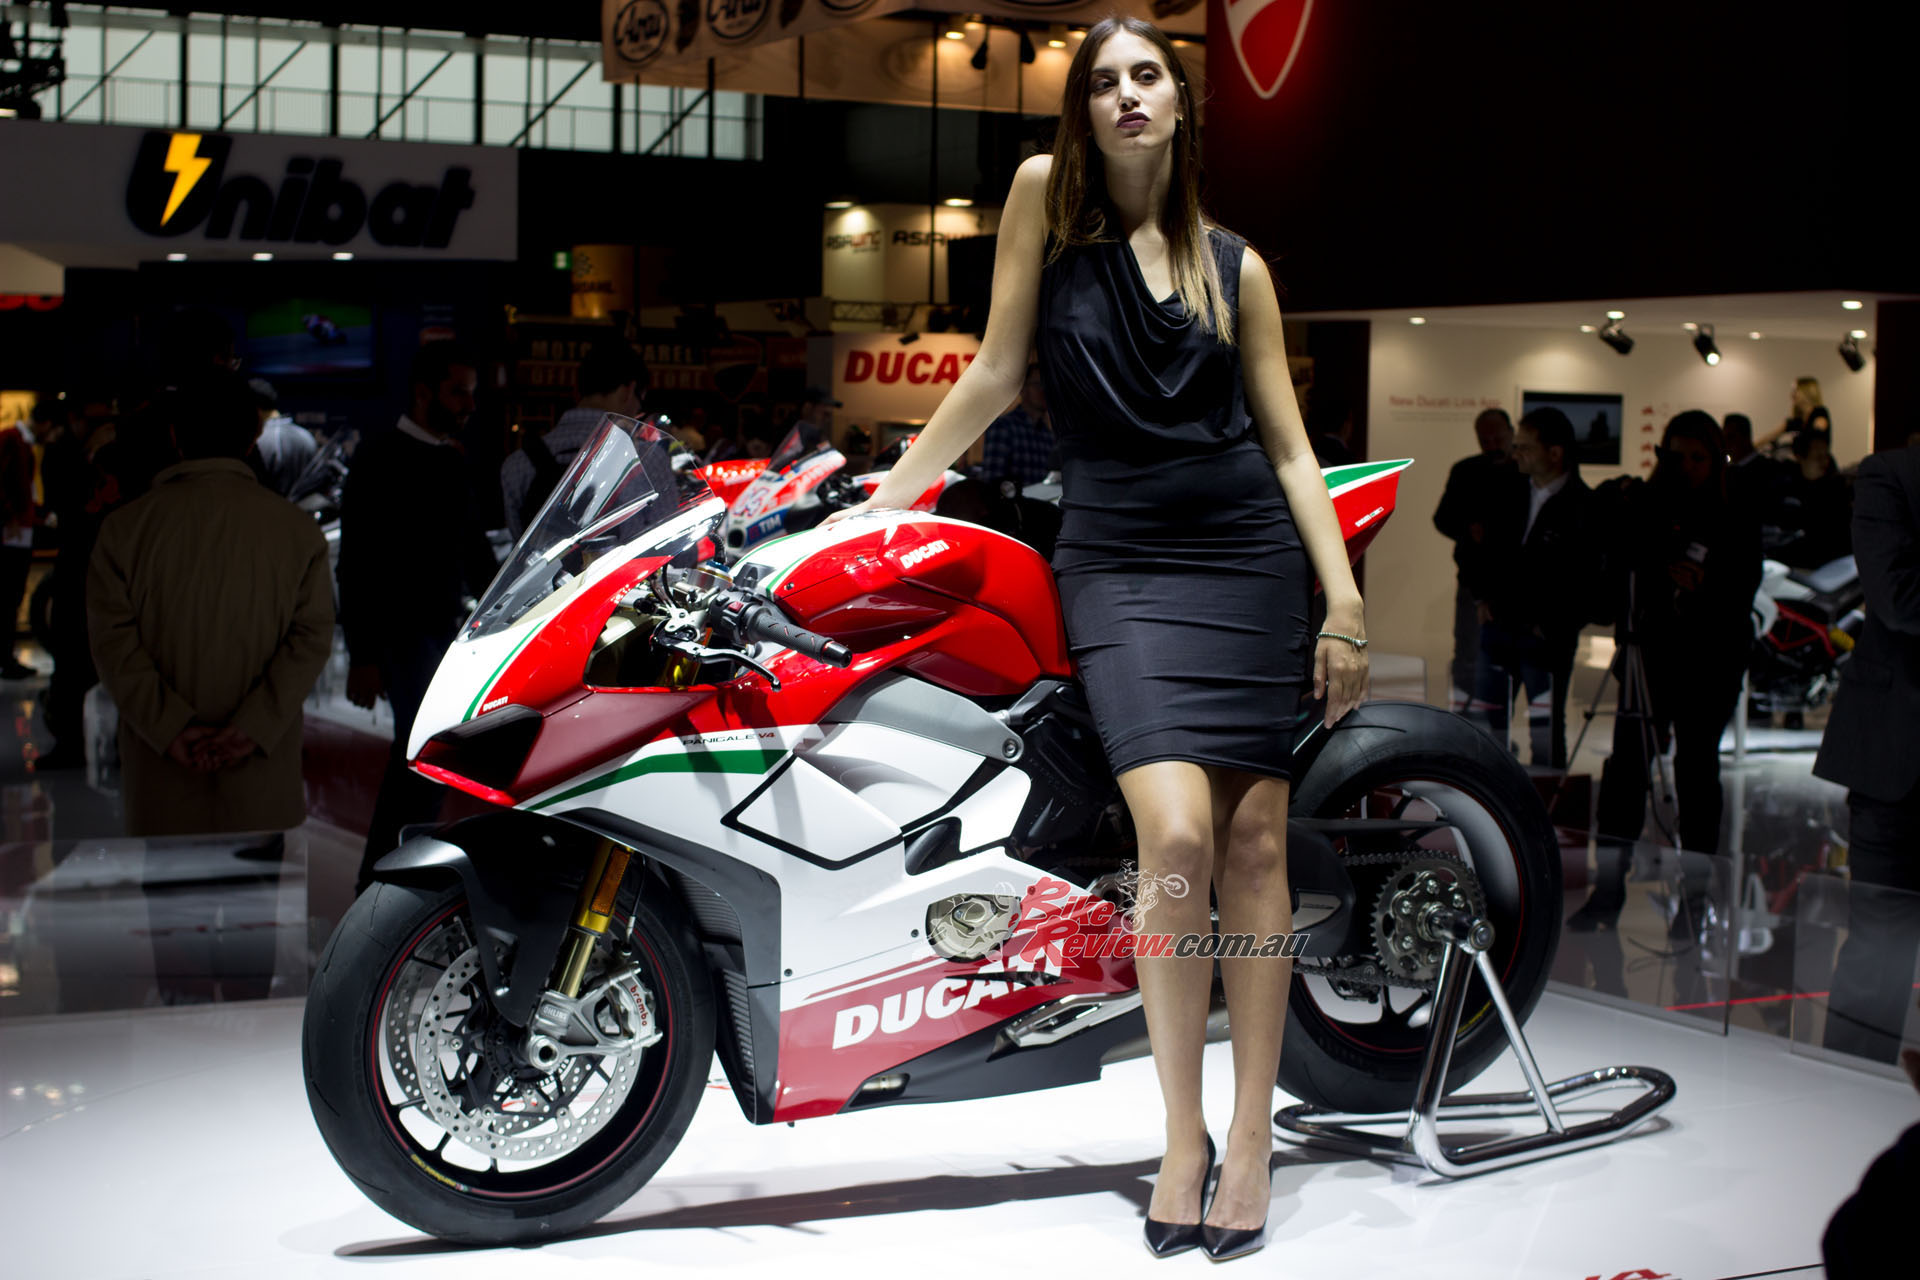 Ducati's Panigale V4 Speciale